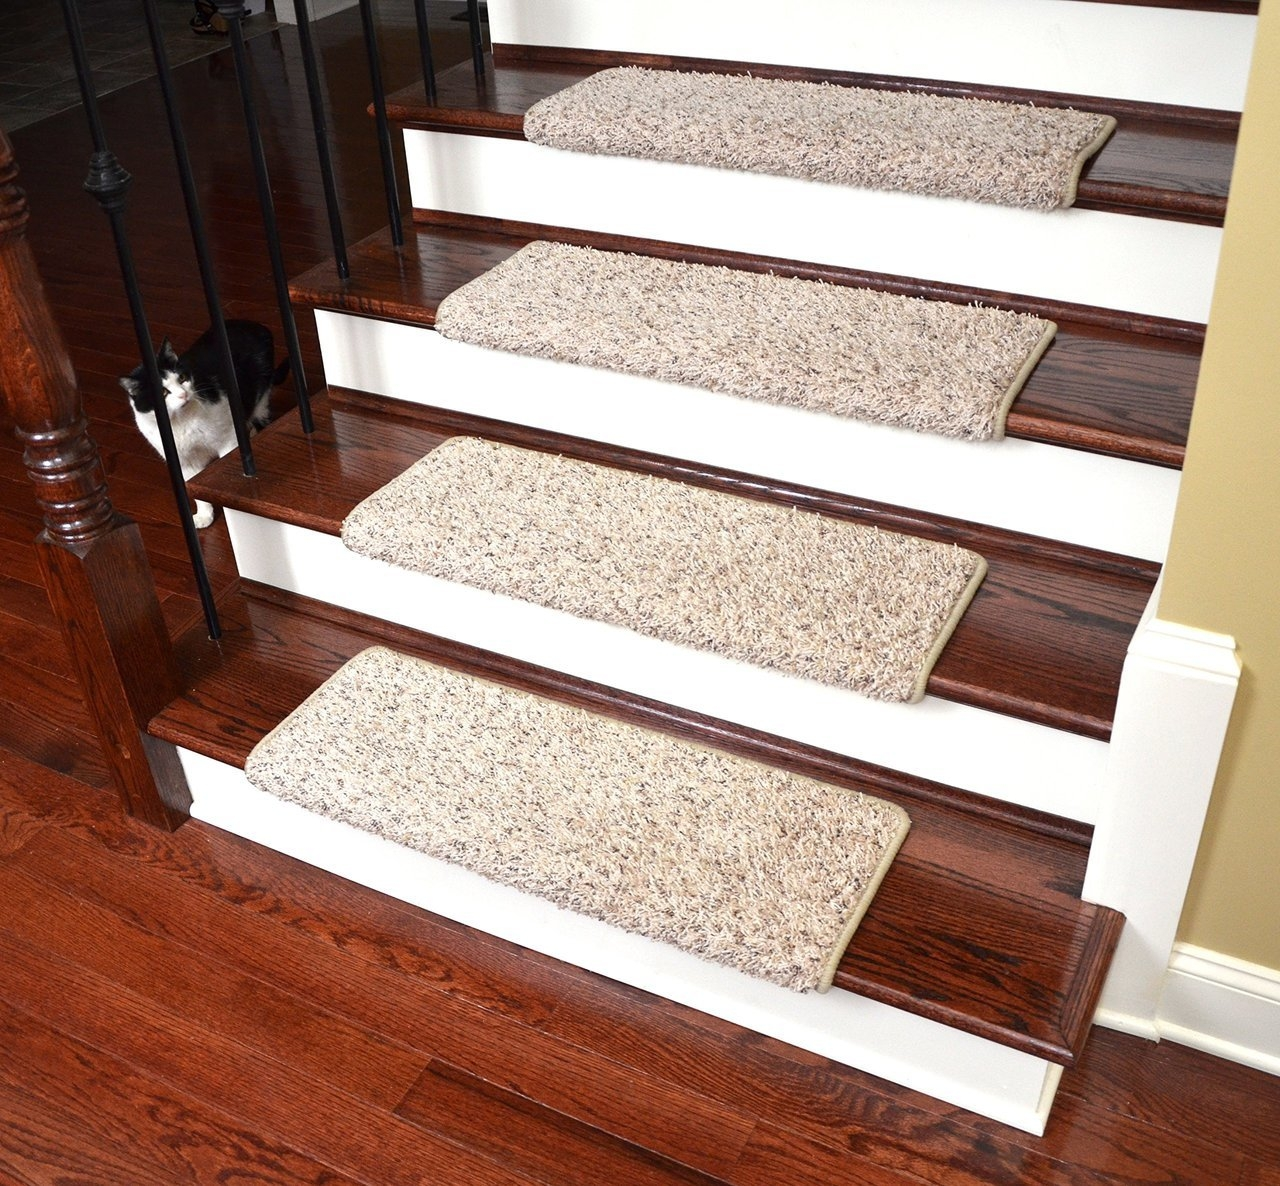 Excellent Stair Tread Rugs Canada 144 Stair Tread Rugs Canada Regarding Stair Treads And Matching Rugs (View 11 of 15)